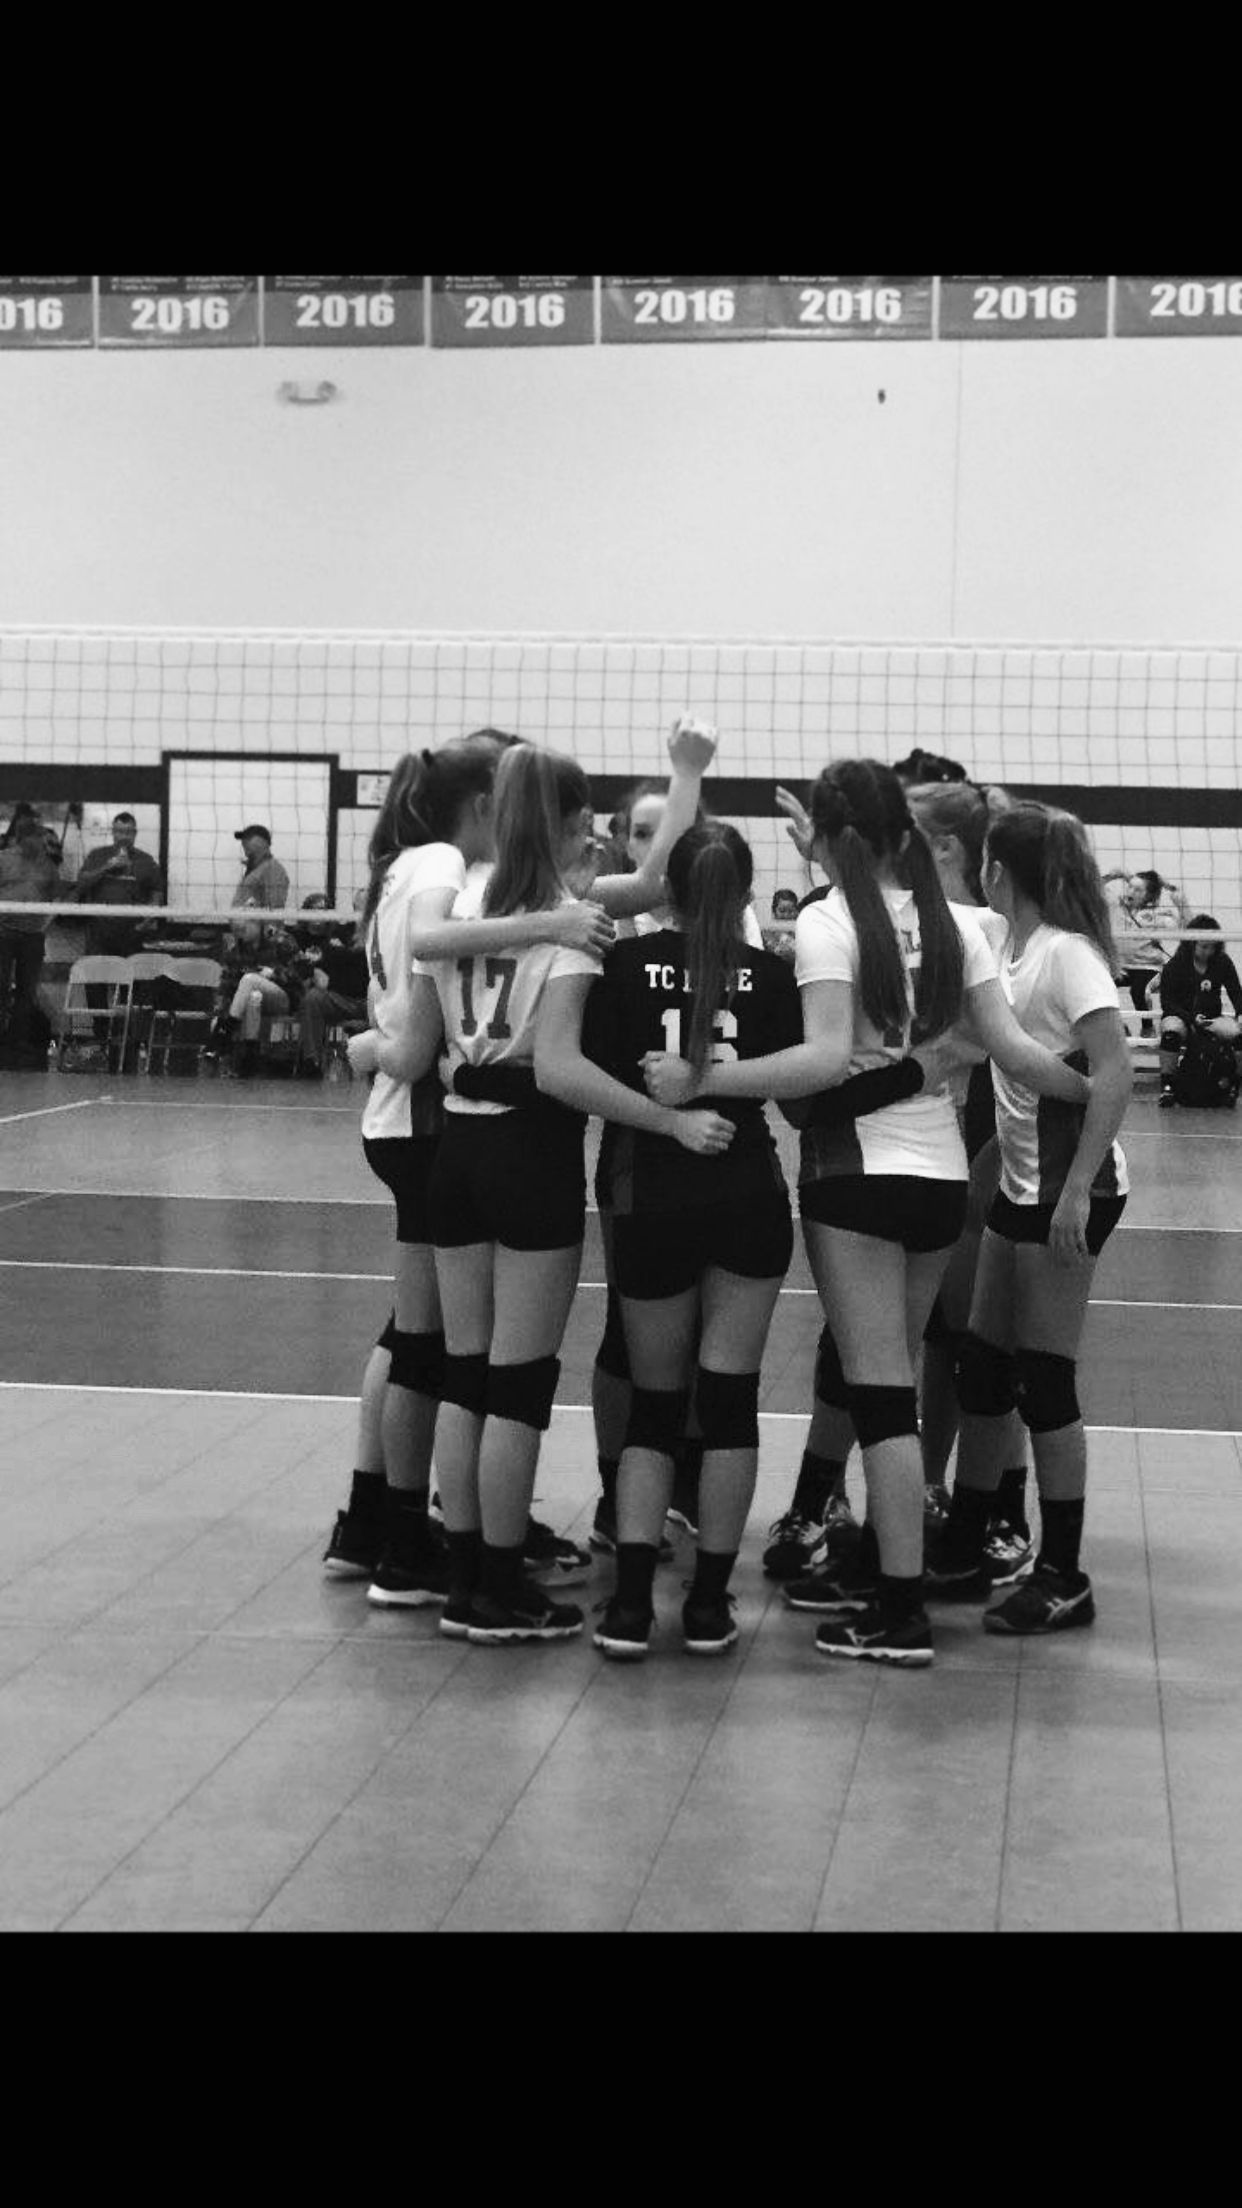 Pin By Haley Fadul On K I S S M Y A C E In 2020 Volleyball Pictures Volleyball Photos Volleyball Team